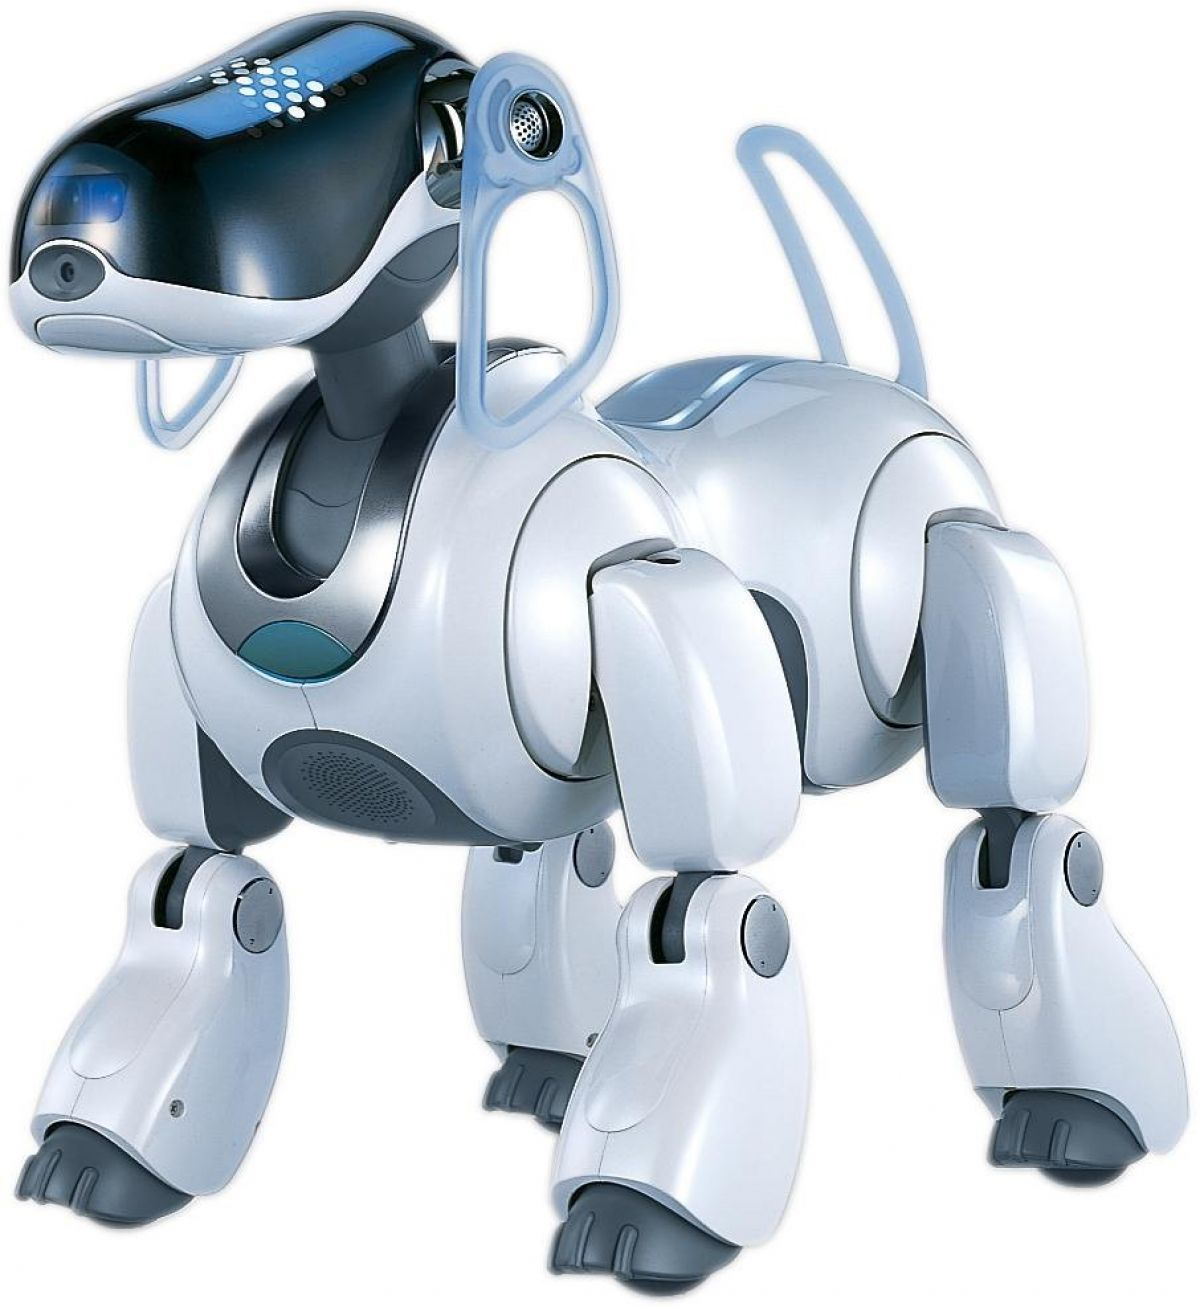 Aibo The Robot Dog Produced By The Sony Company Between 1999 And